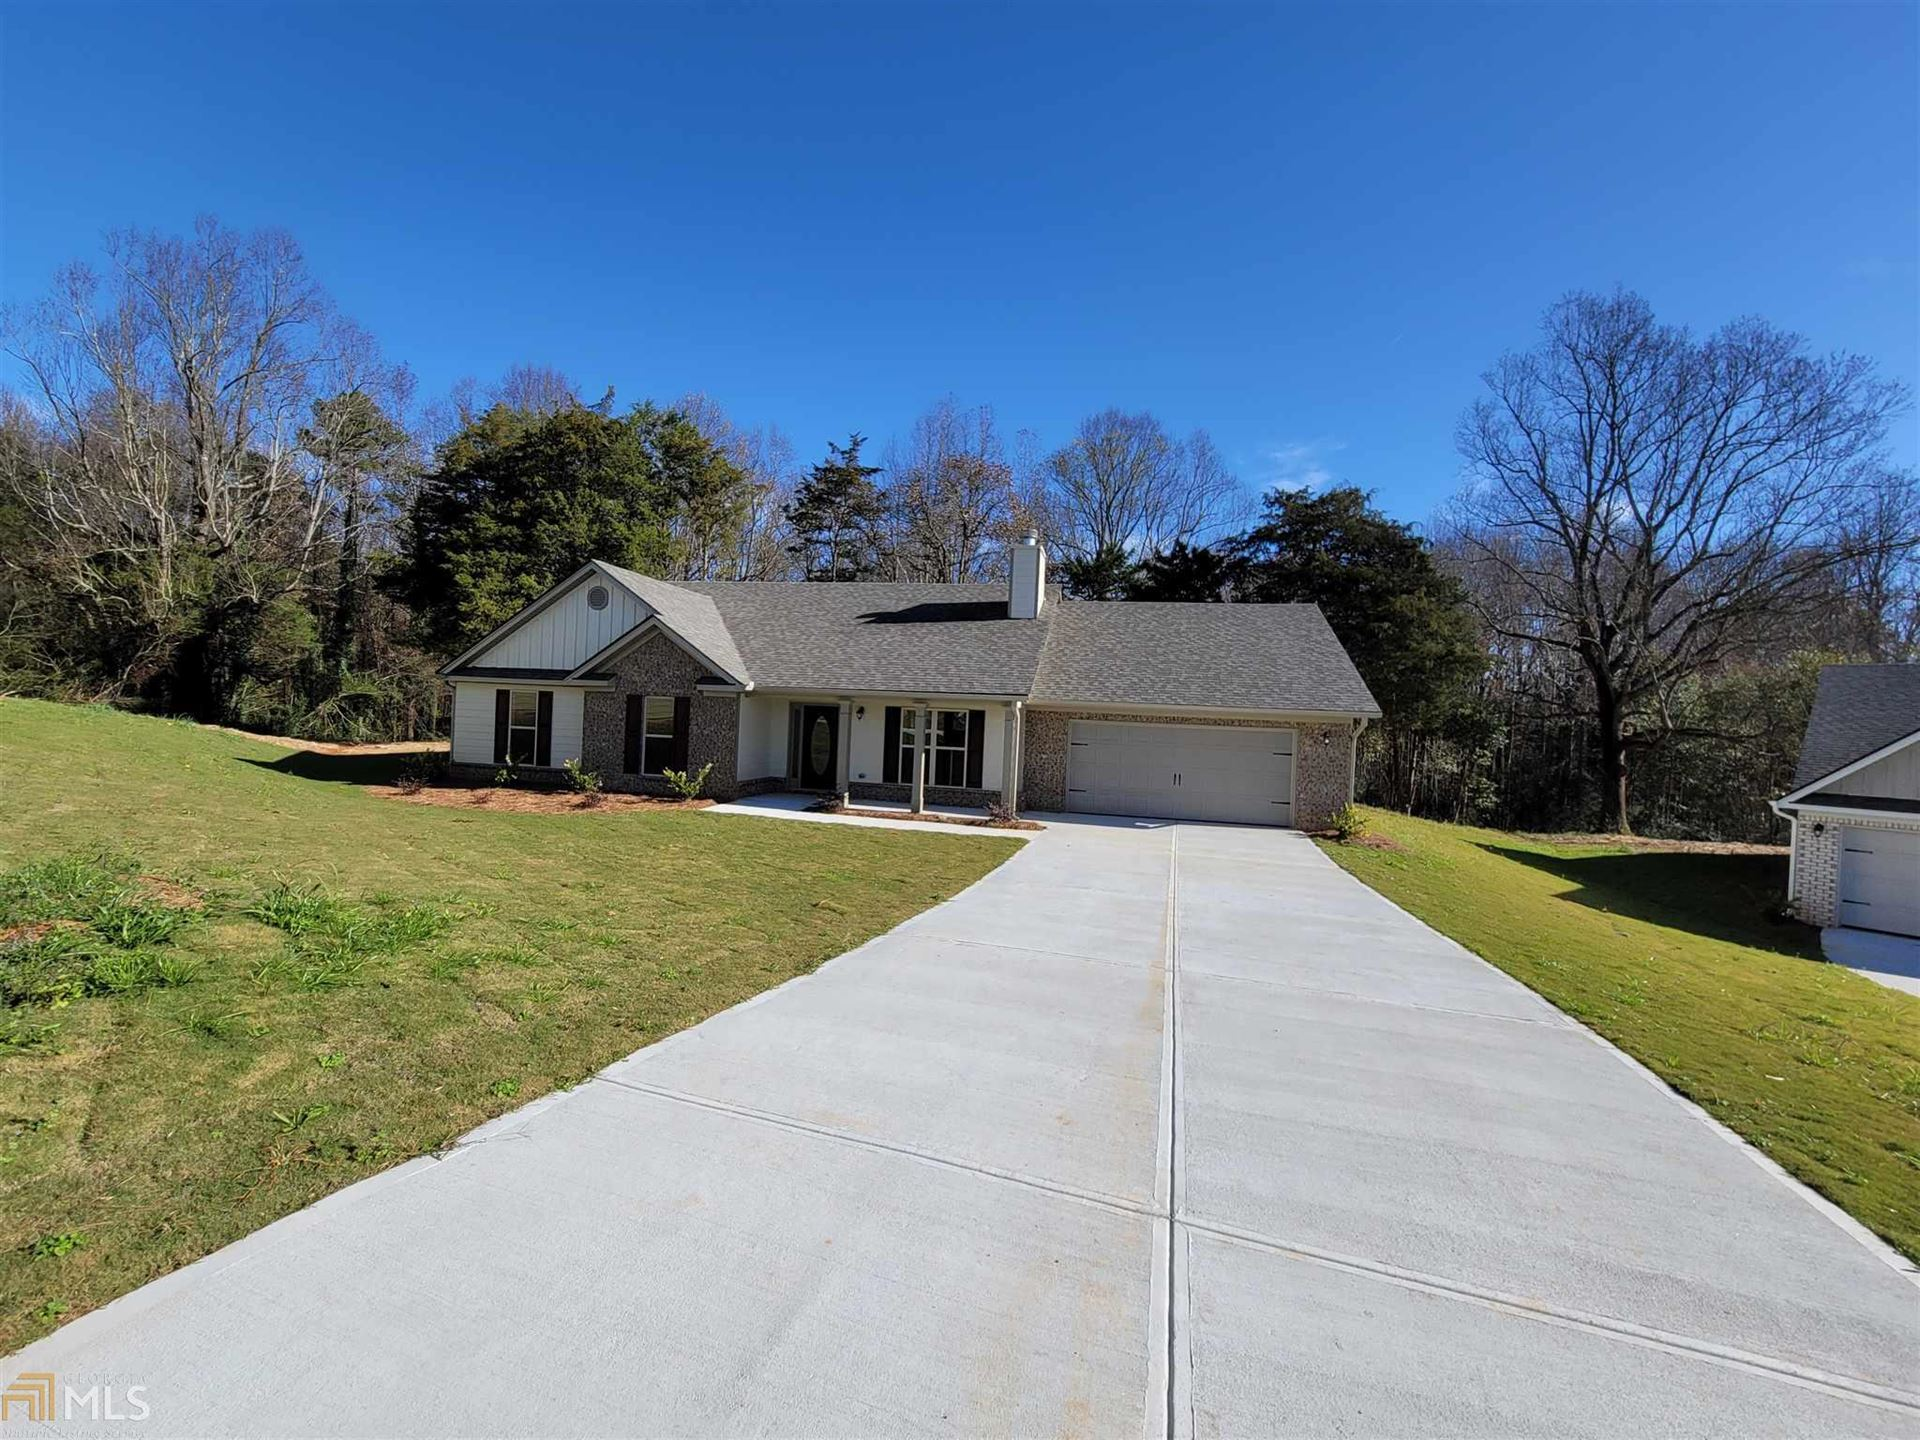 258 Camp Ct, Bethlehem, GA 30620 - #: 8919388